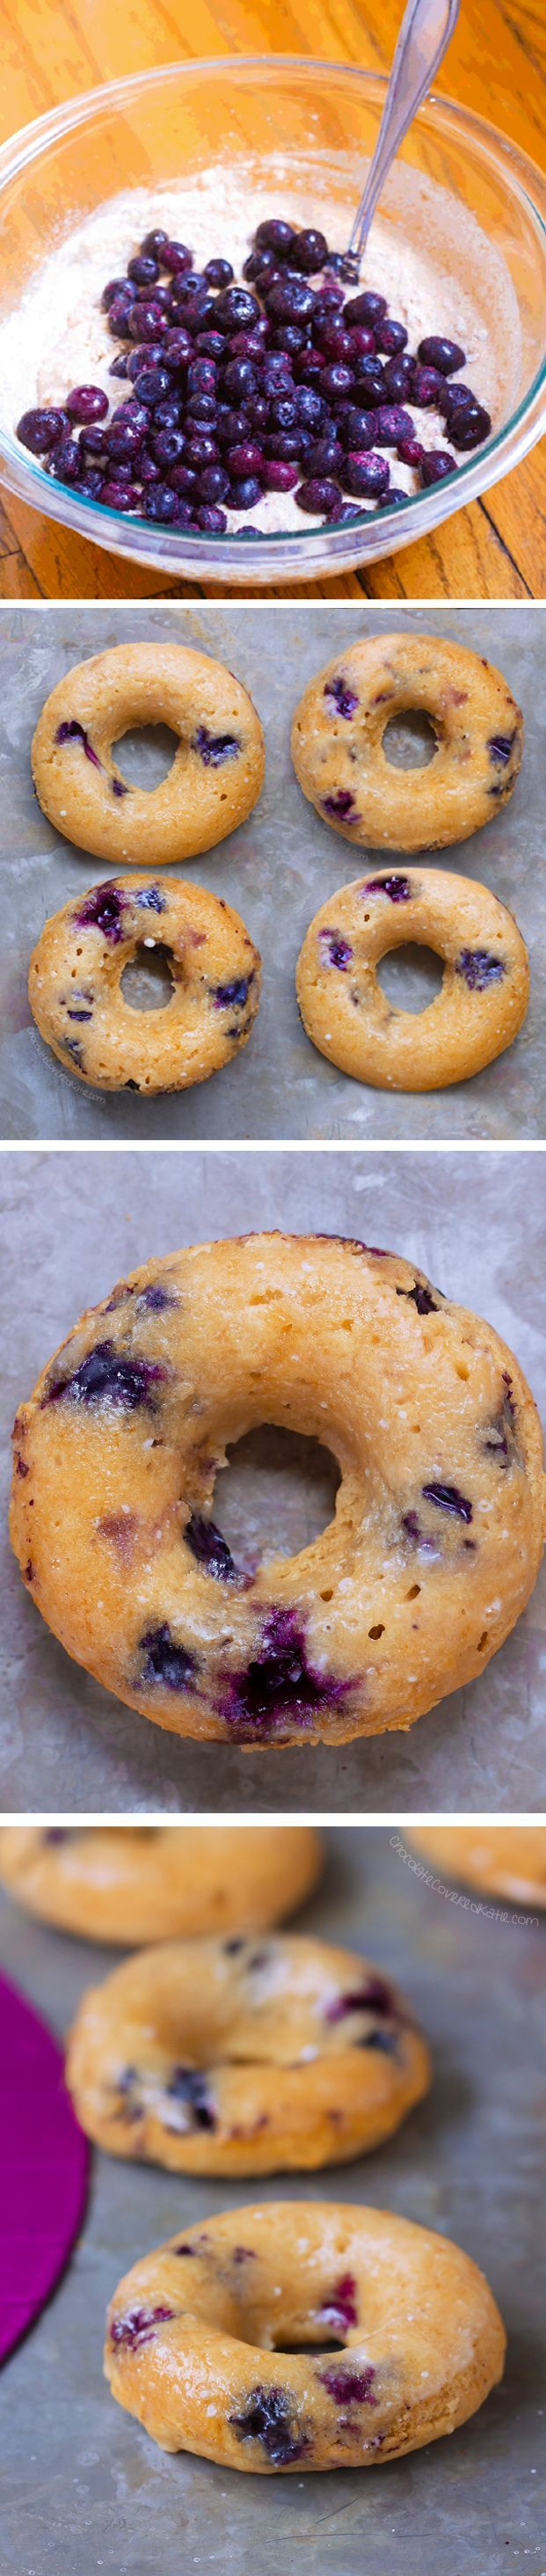 Ingredients: 1/2 cup blueberries, 1 cup flour, 1 tsp baking powder, 1/2 tsp cinnamon, 1/4 cup… http://chocolatecoveredkatie.com/2016/04/14/baked-donuts-blueberry-refined-sugar-free/ /choccoveredkt/